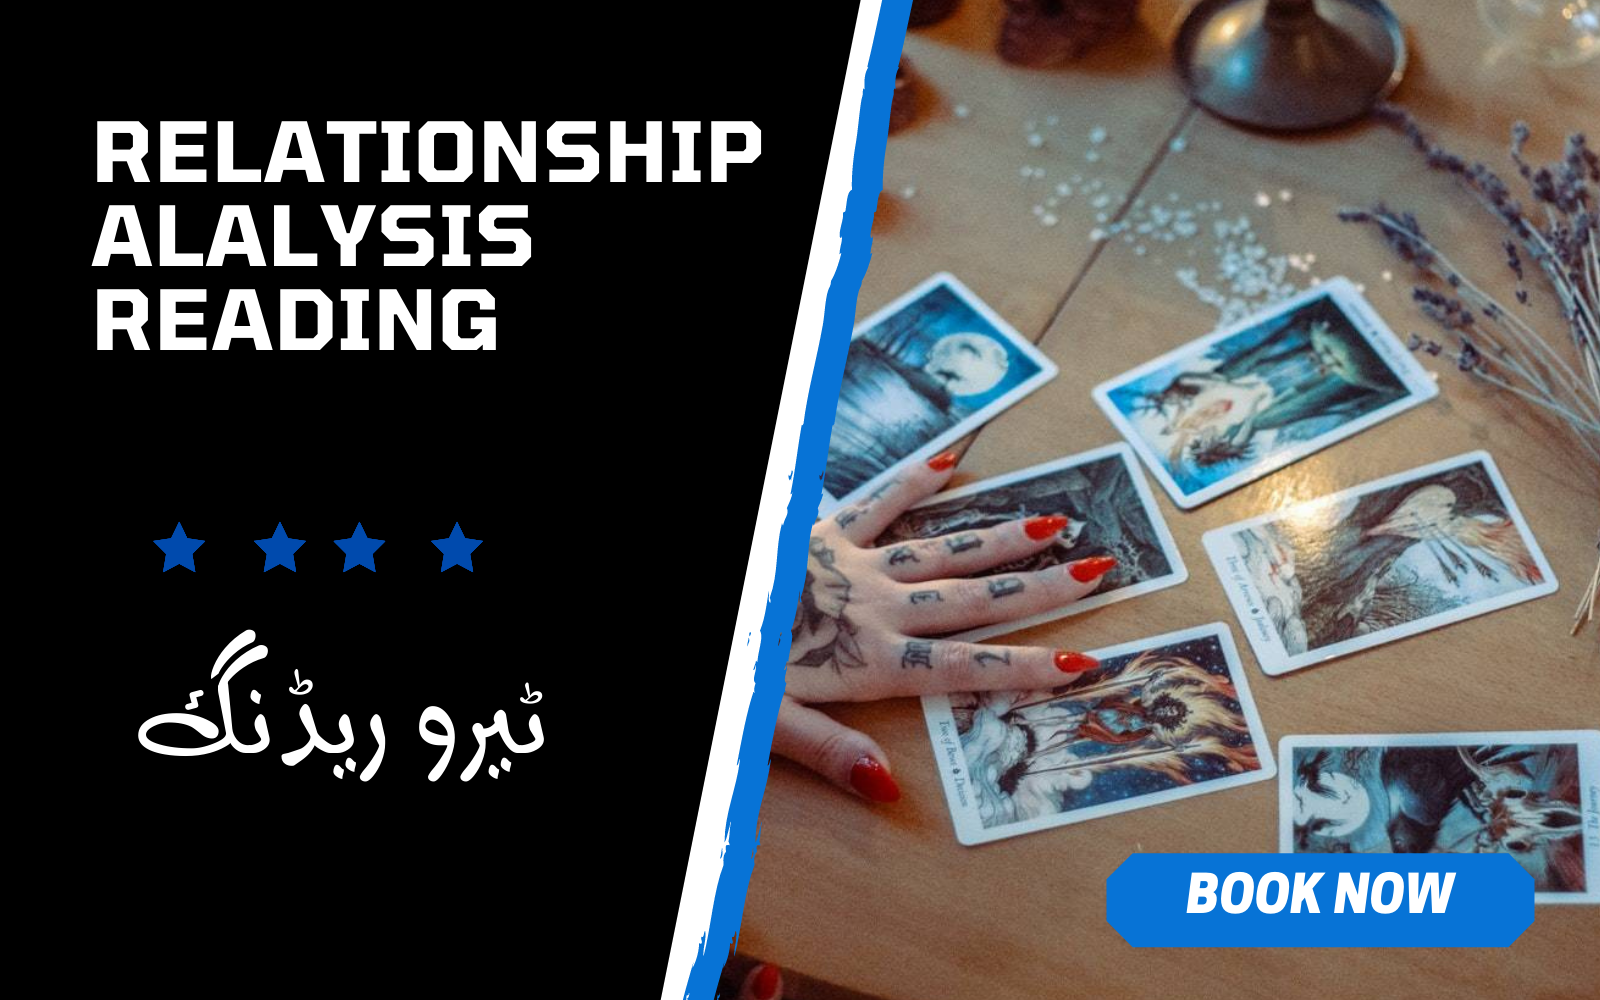 I will do realtionship analysis especially for your needs as your psychic